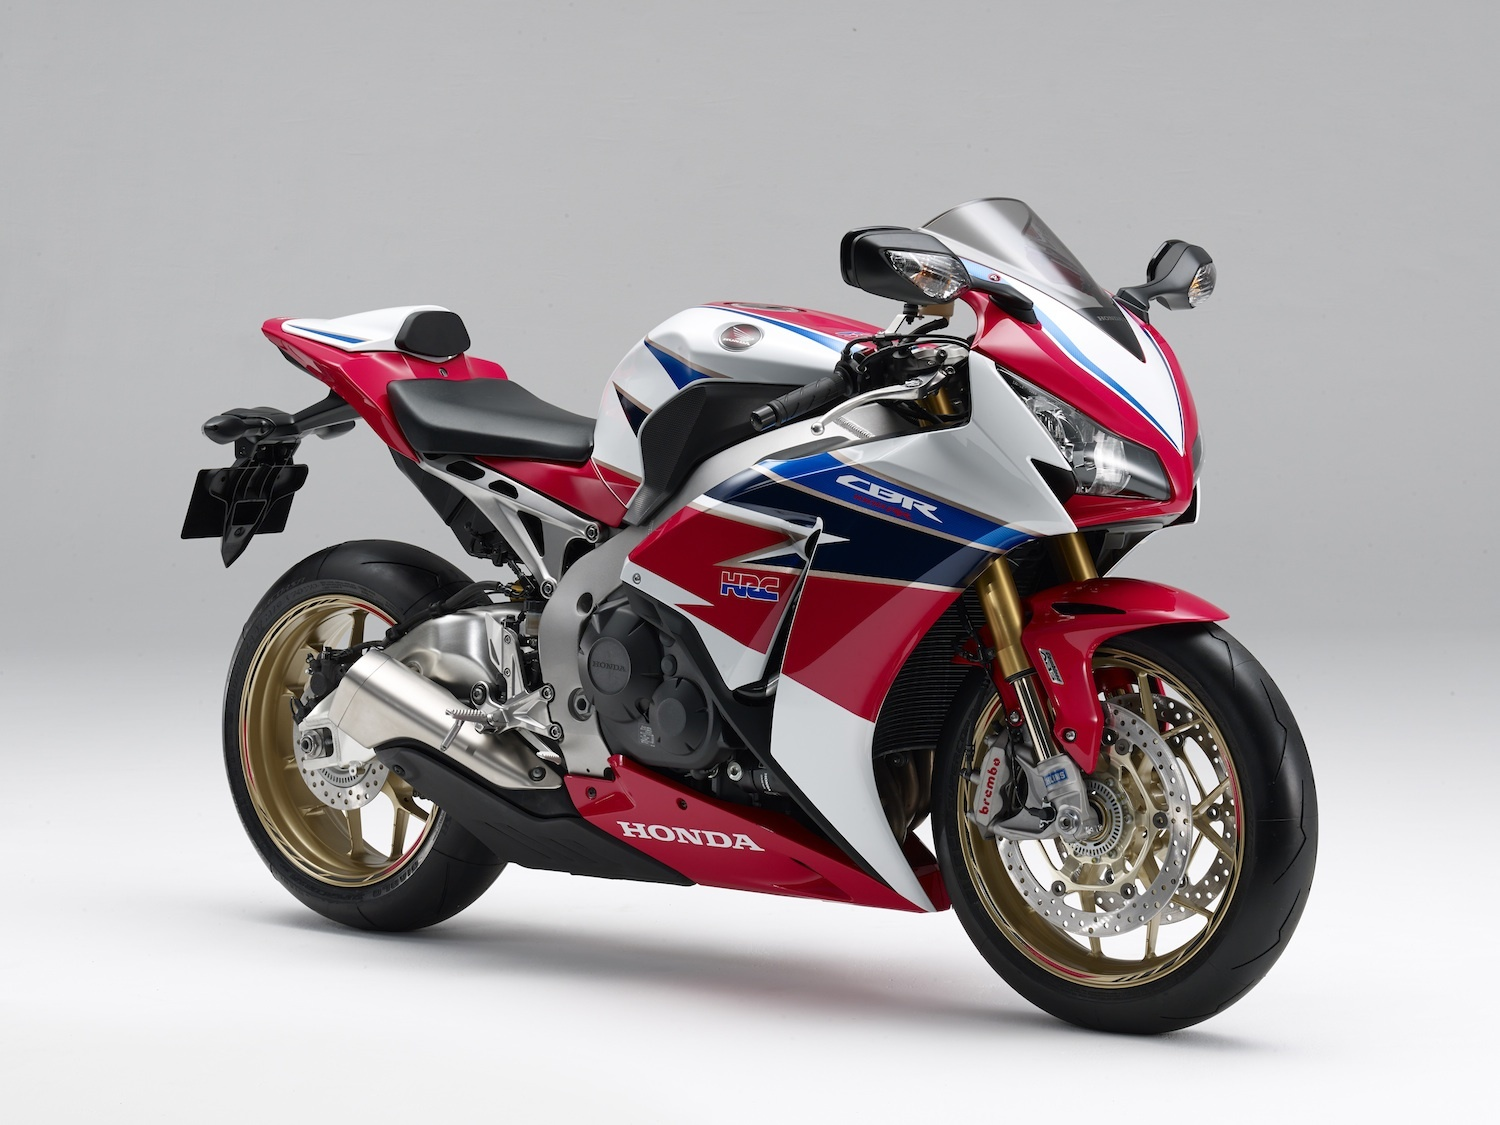 2015 Honda Cbr1000rr Sp Repsol Review Specs Pictures